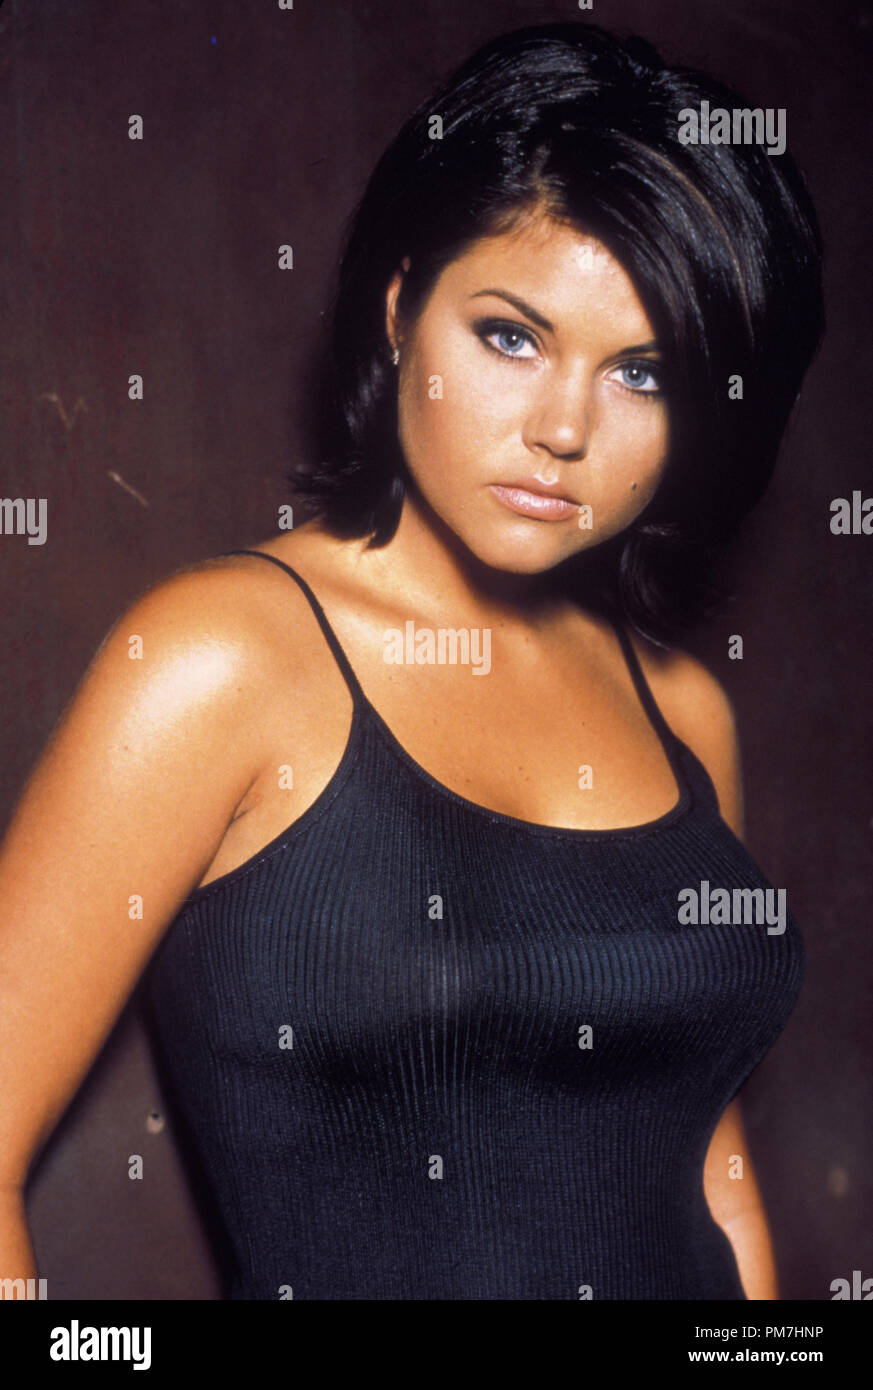 Tiffani-Amber Thiessen nudes (65 photos), video Feet, YouTube, braless 2015